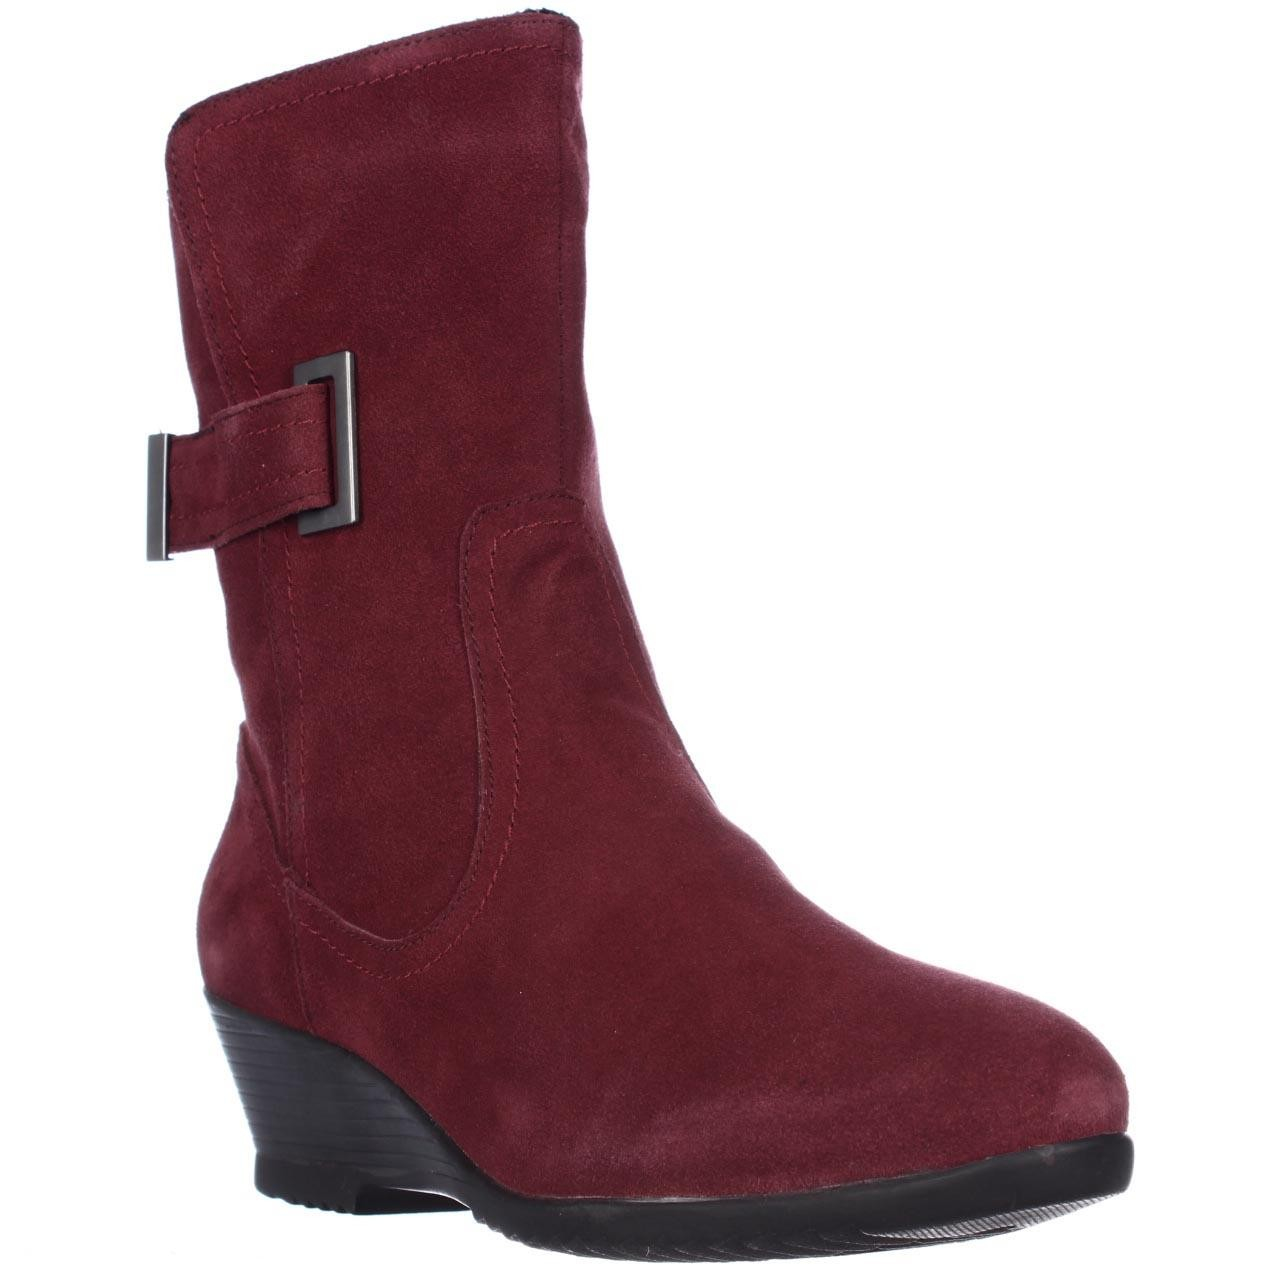 sporto northern wedge mid calf winter boots lyst